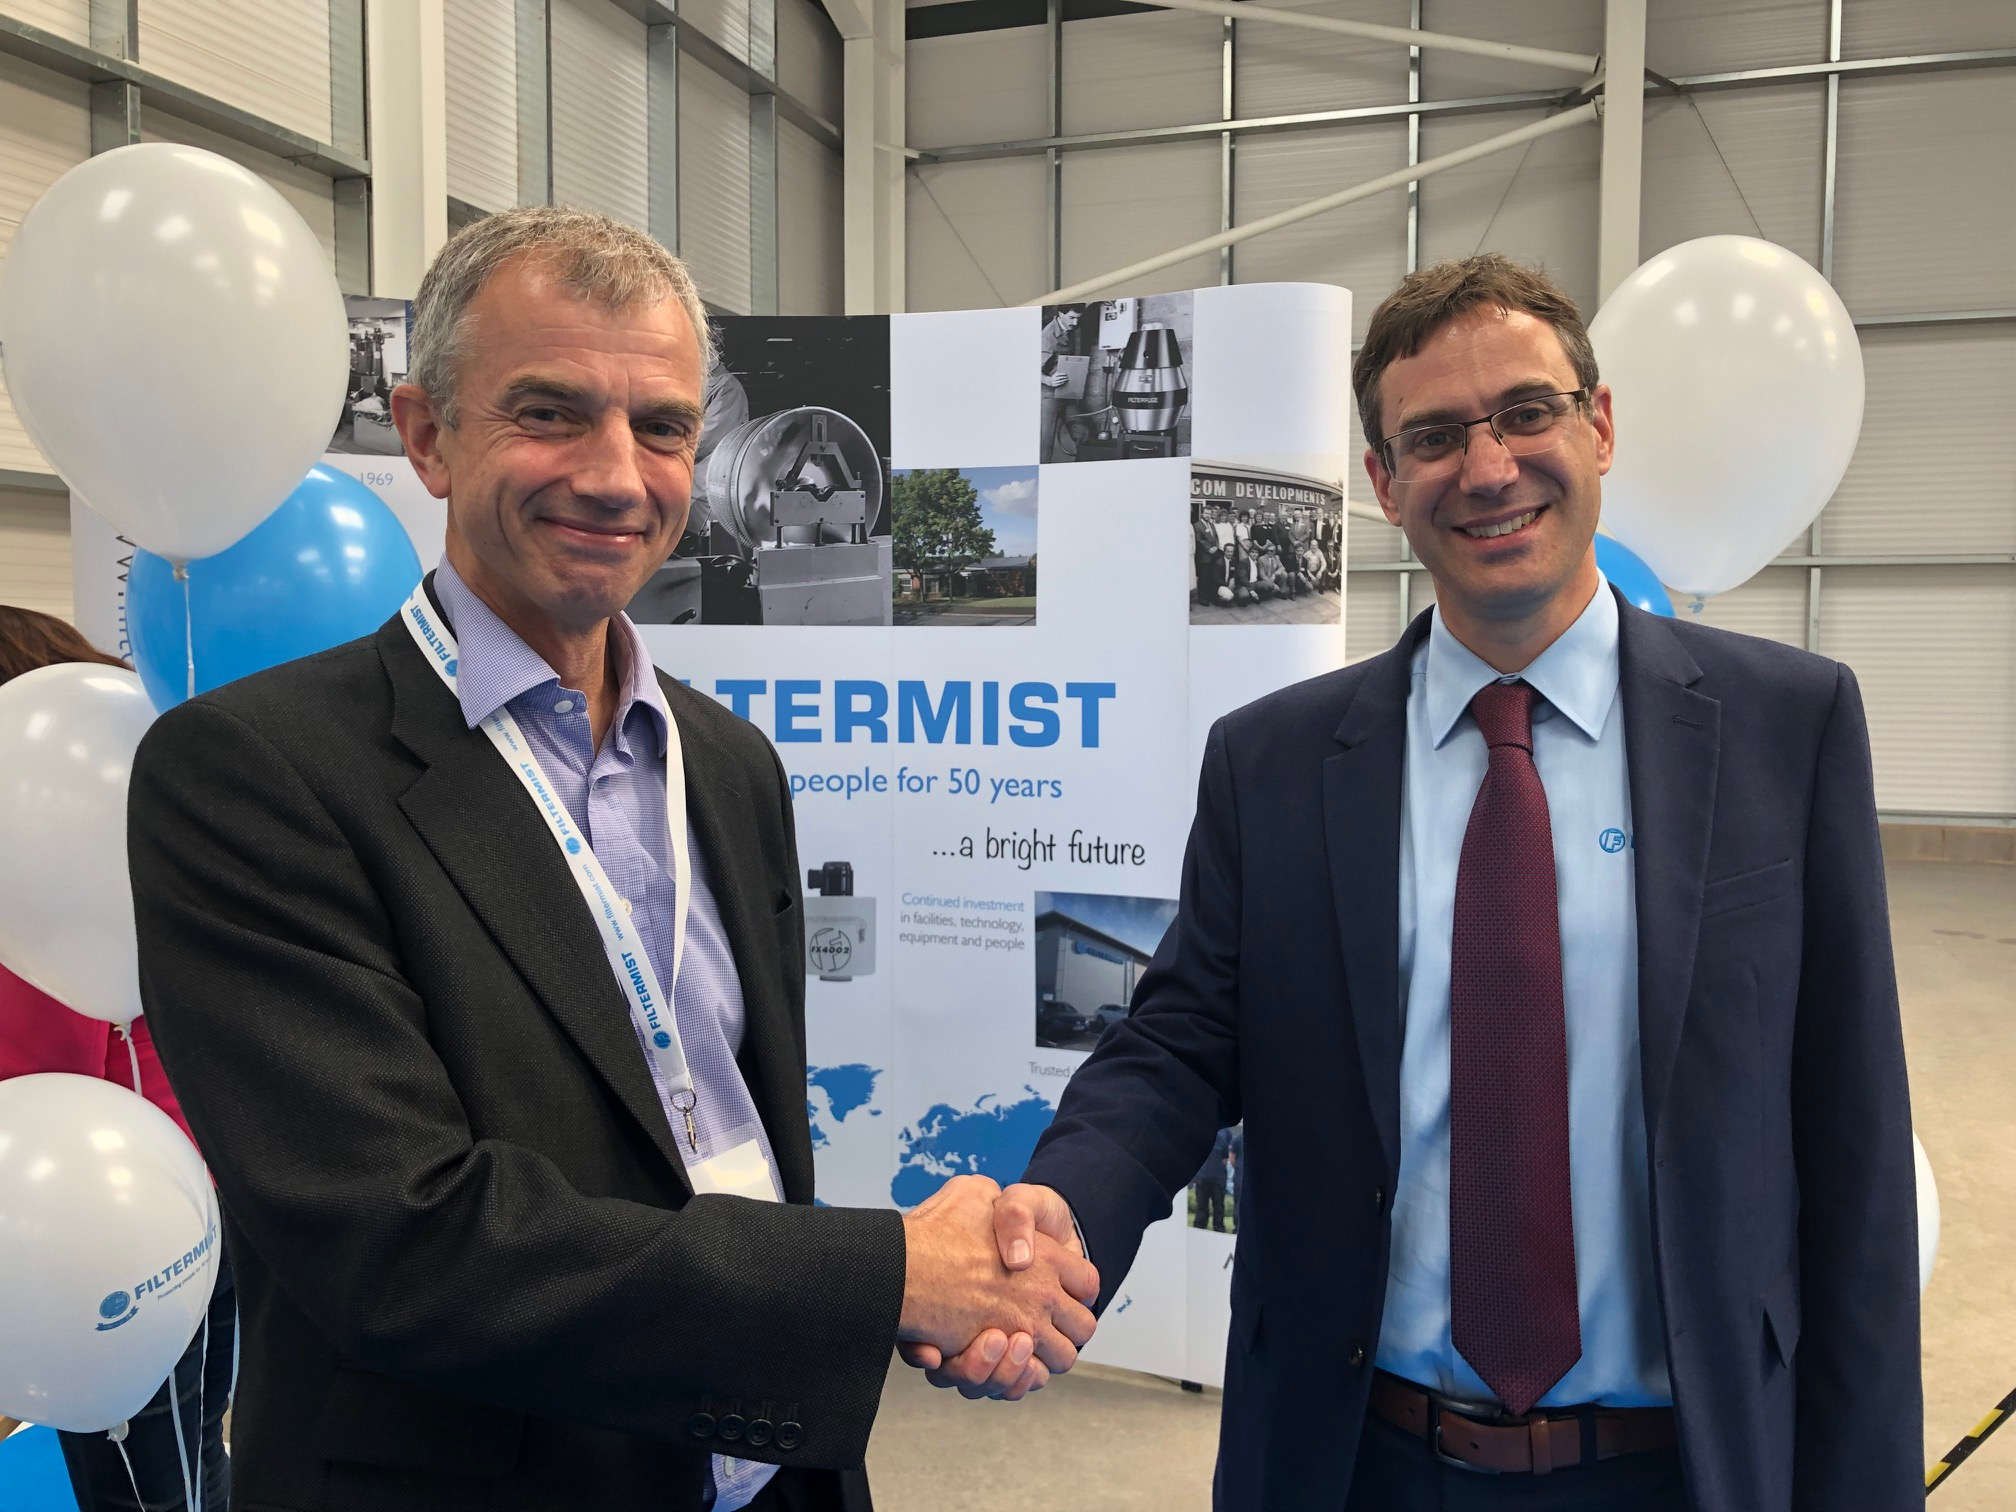 MecWash attend Filtermist's 50th anniversary celebrations